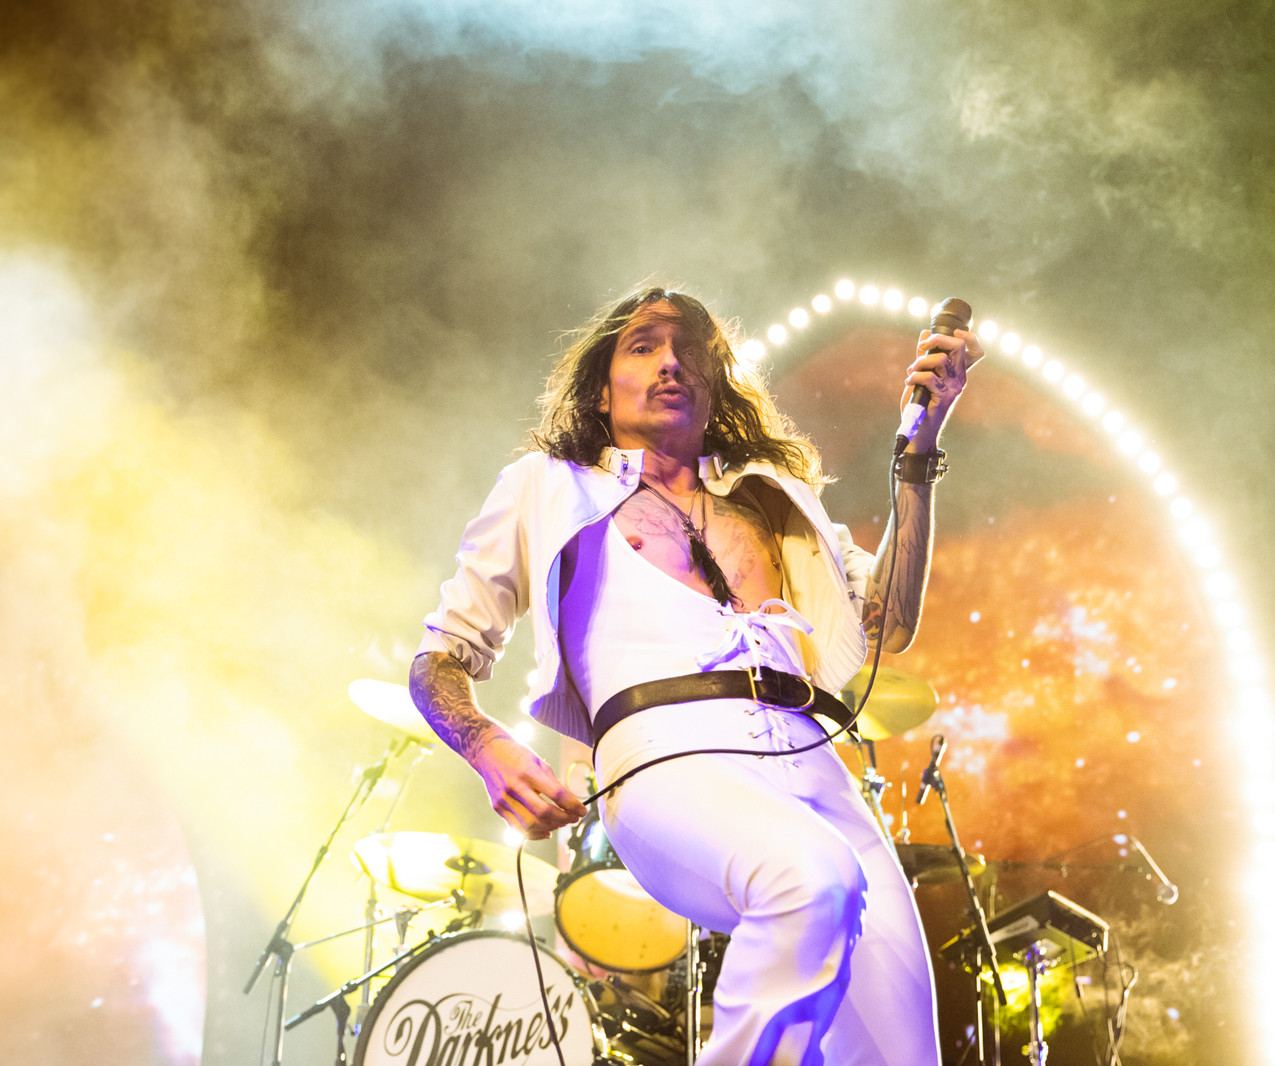 The Darkness, photo by Gili Dailes (2)